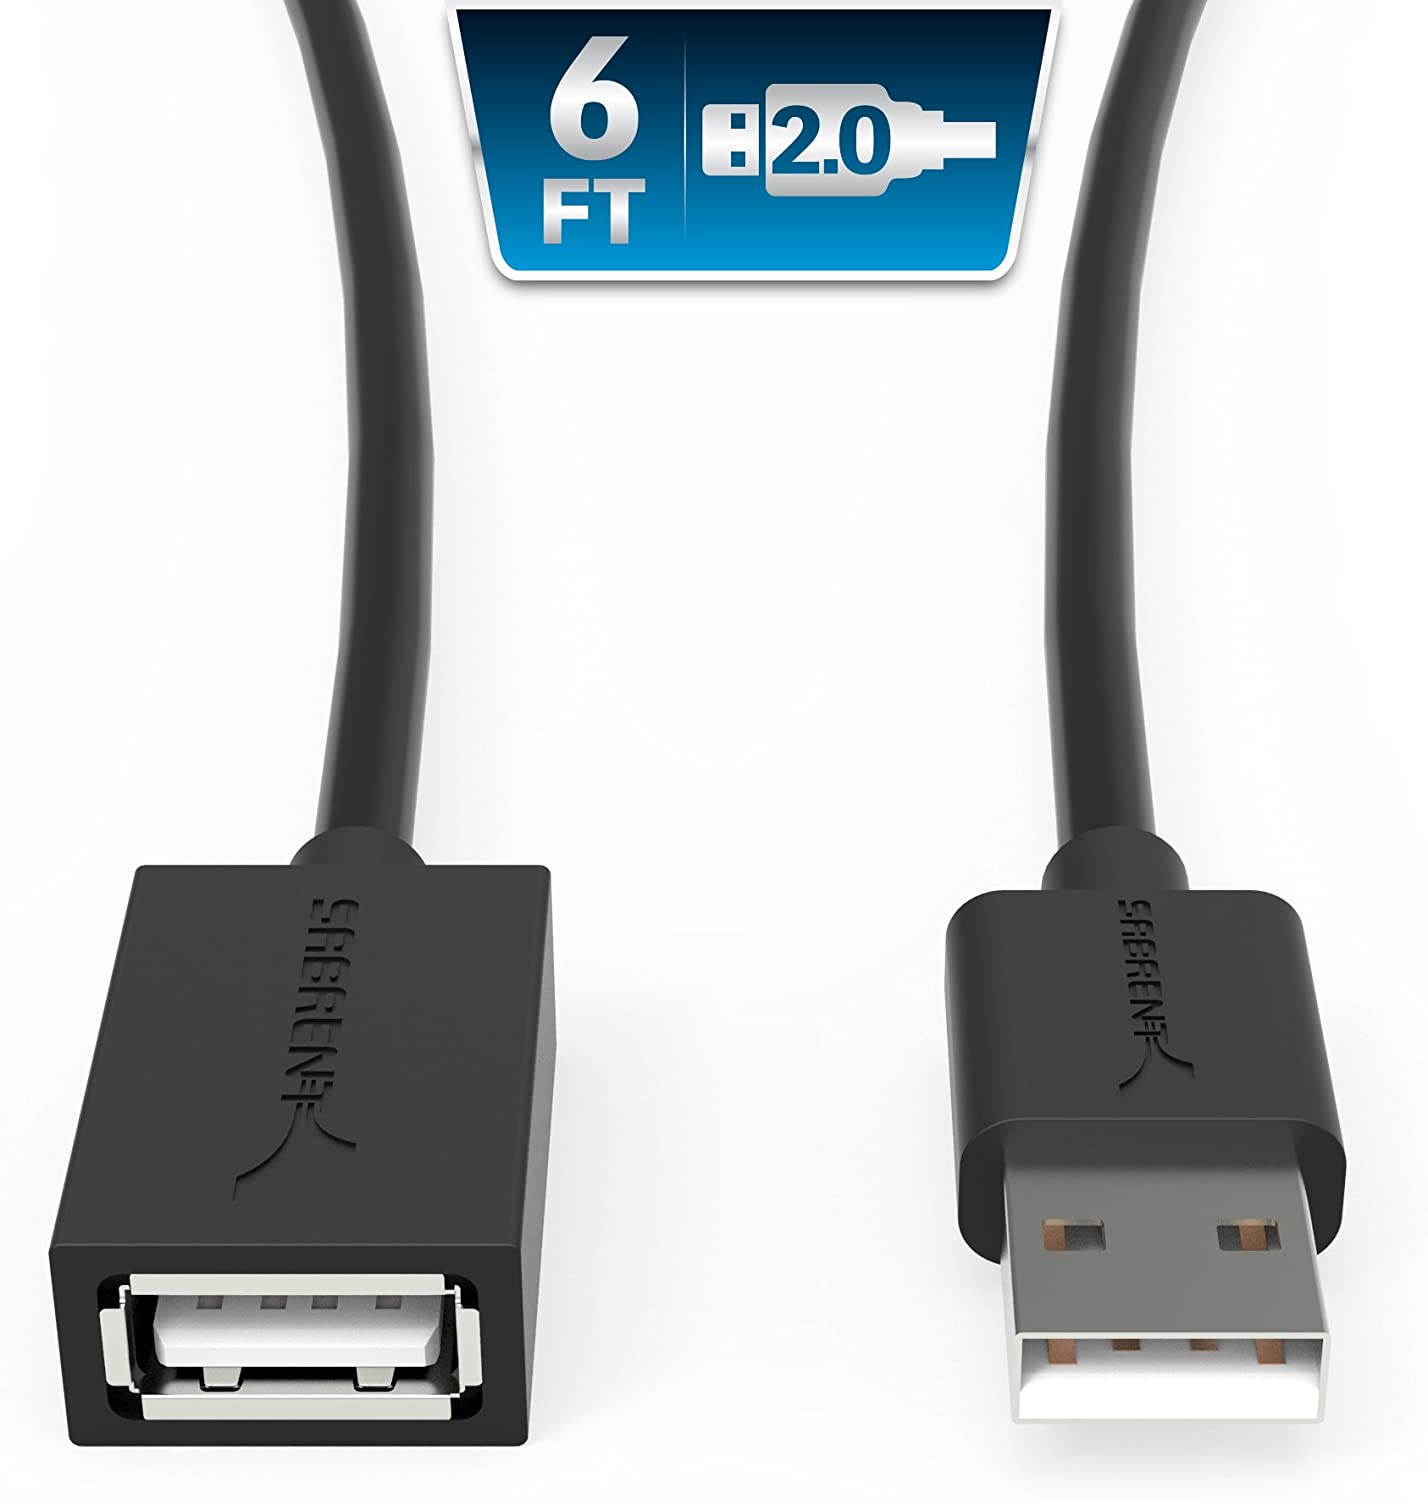 SABRENT 22AWG USB 2.0 Extension Cable - A-Male to A-Female [Black] 6 Feet (CB-2060)